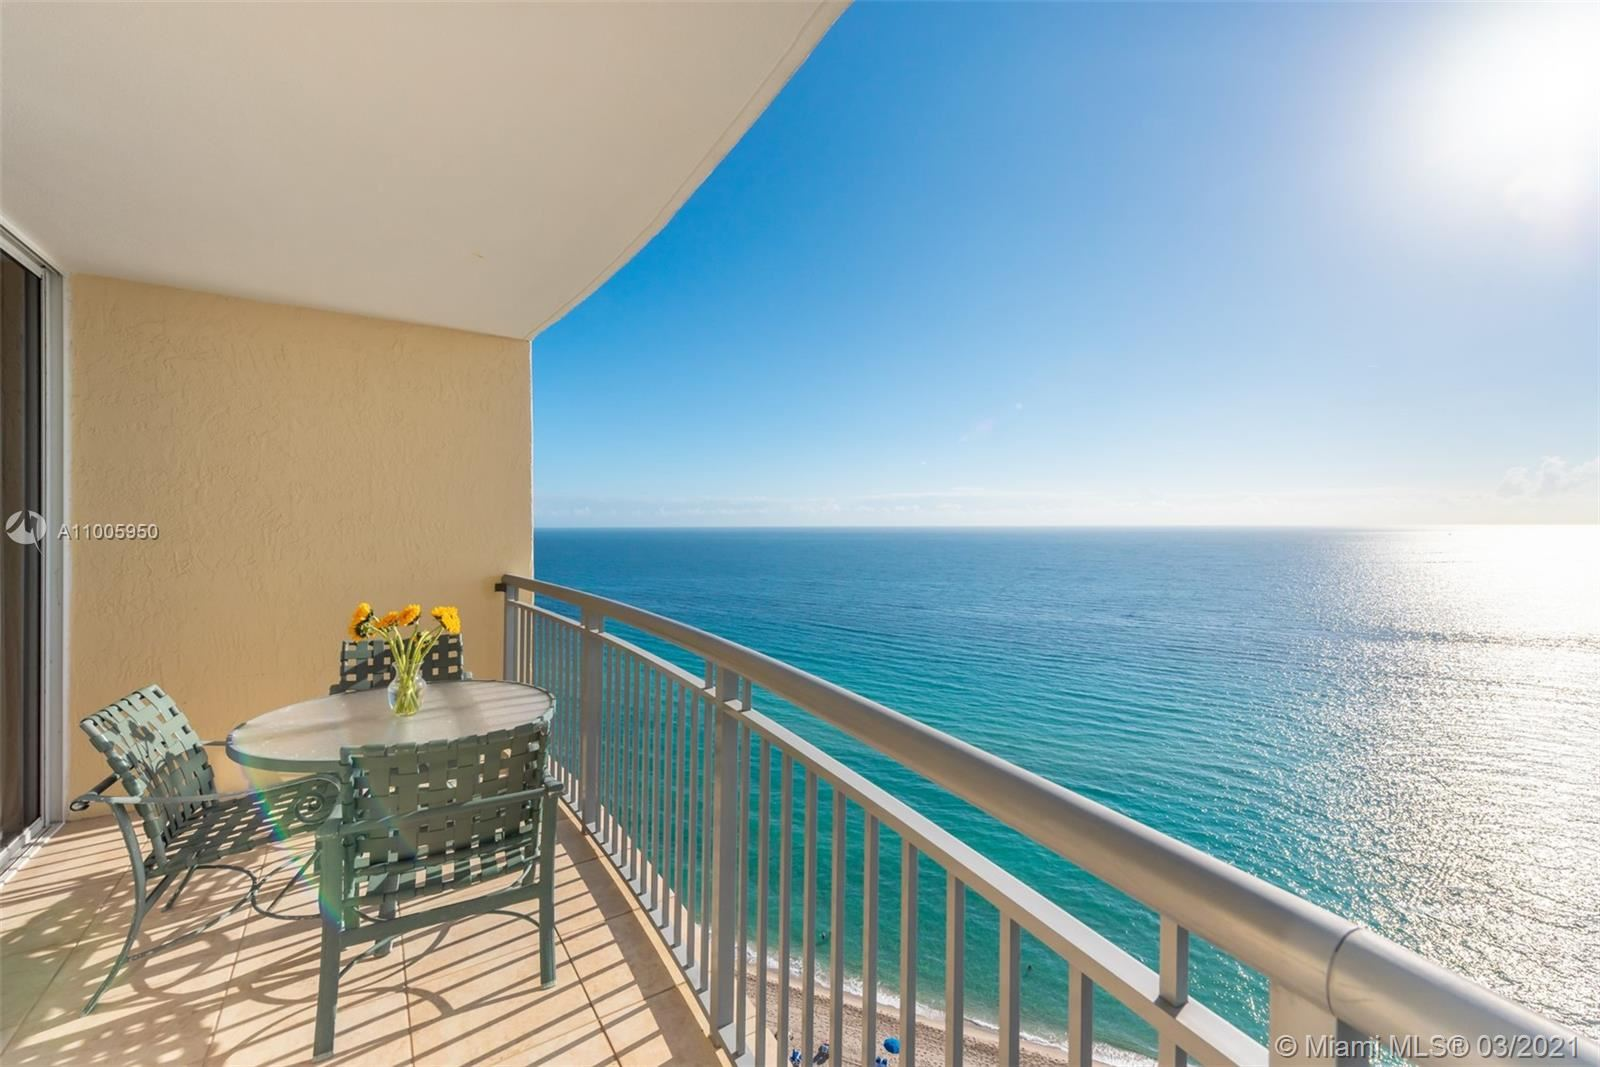 17375 Collins Ave #2202, Sunny Isles, FL 33160 - #: A11005950